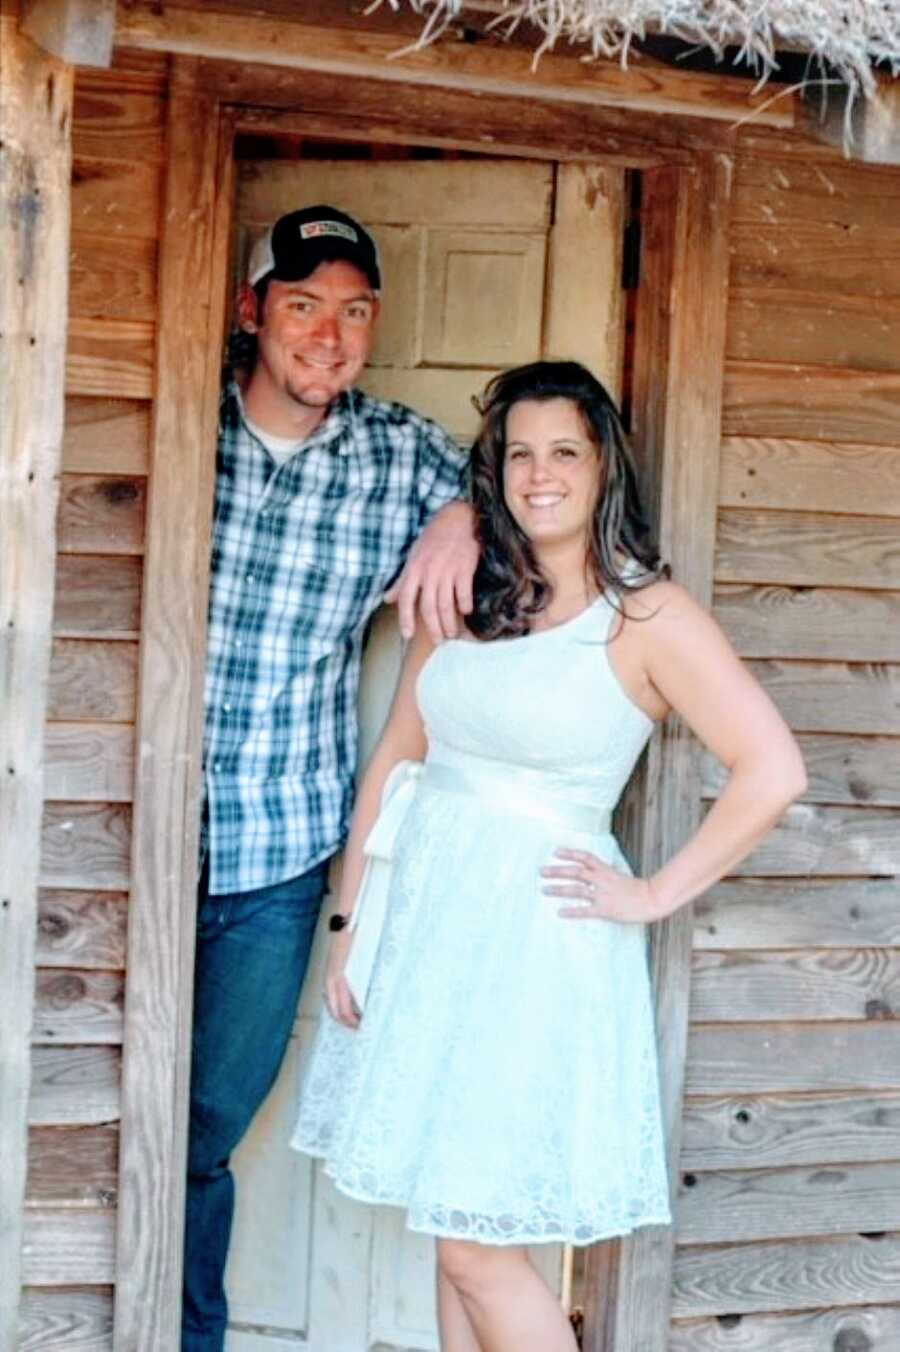 Recently married couple take photos together, the woman in a white dress and the man in a blue and green plaid shirt